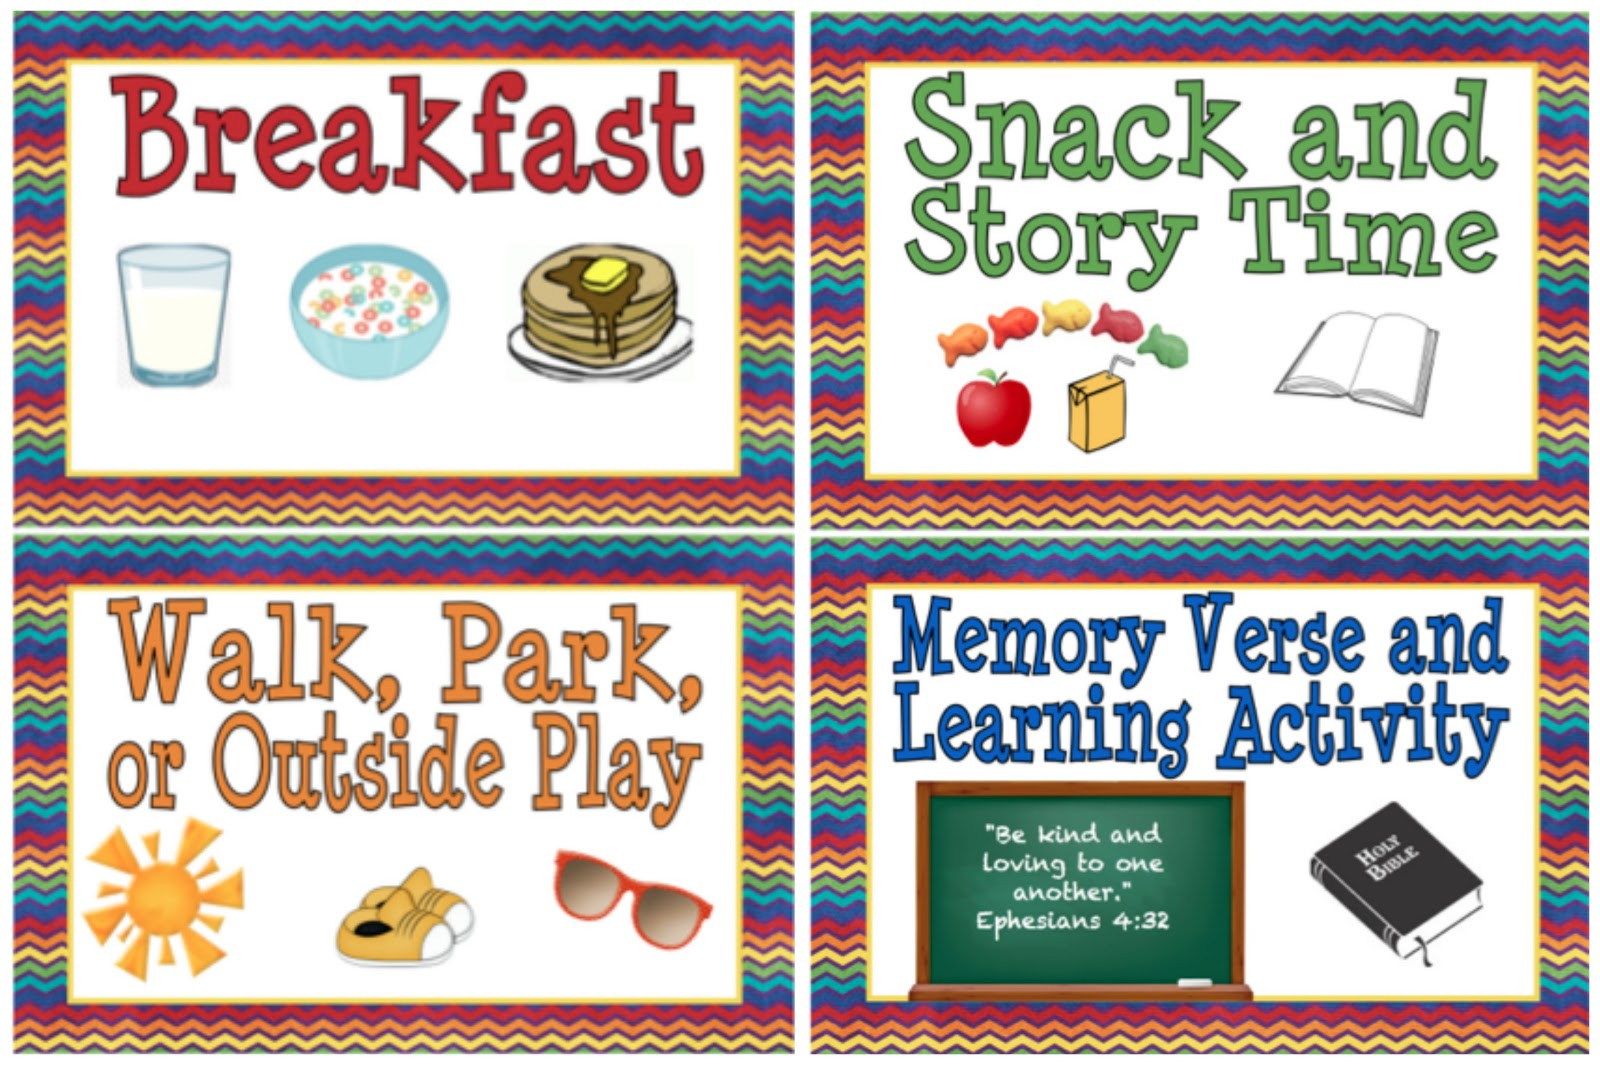 Printable Schedule Cards For Preschool | Download Them Or Print - Free Printable Schedule Cards For Preschool